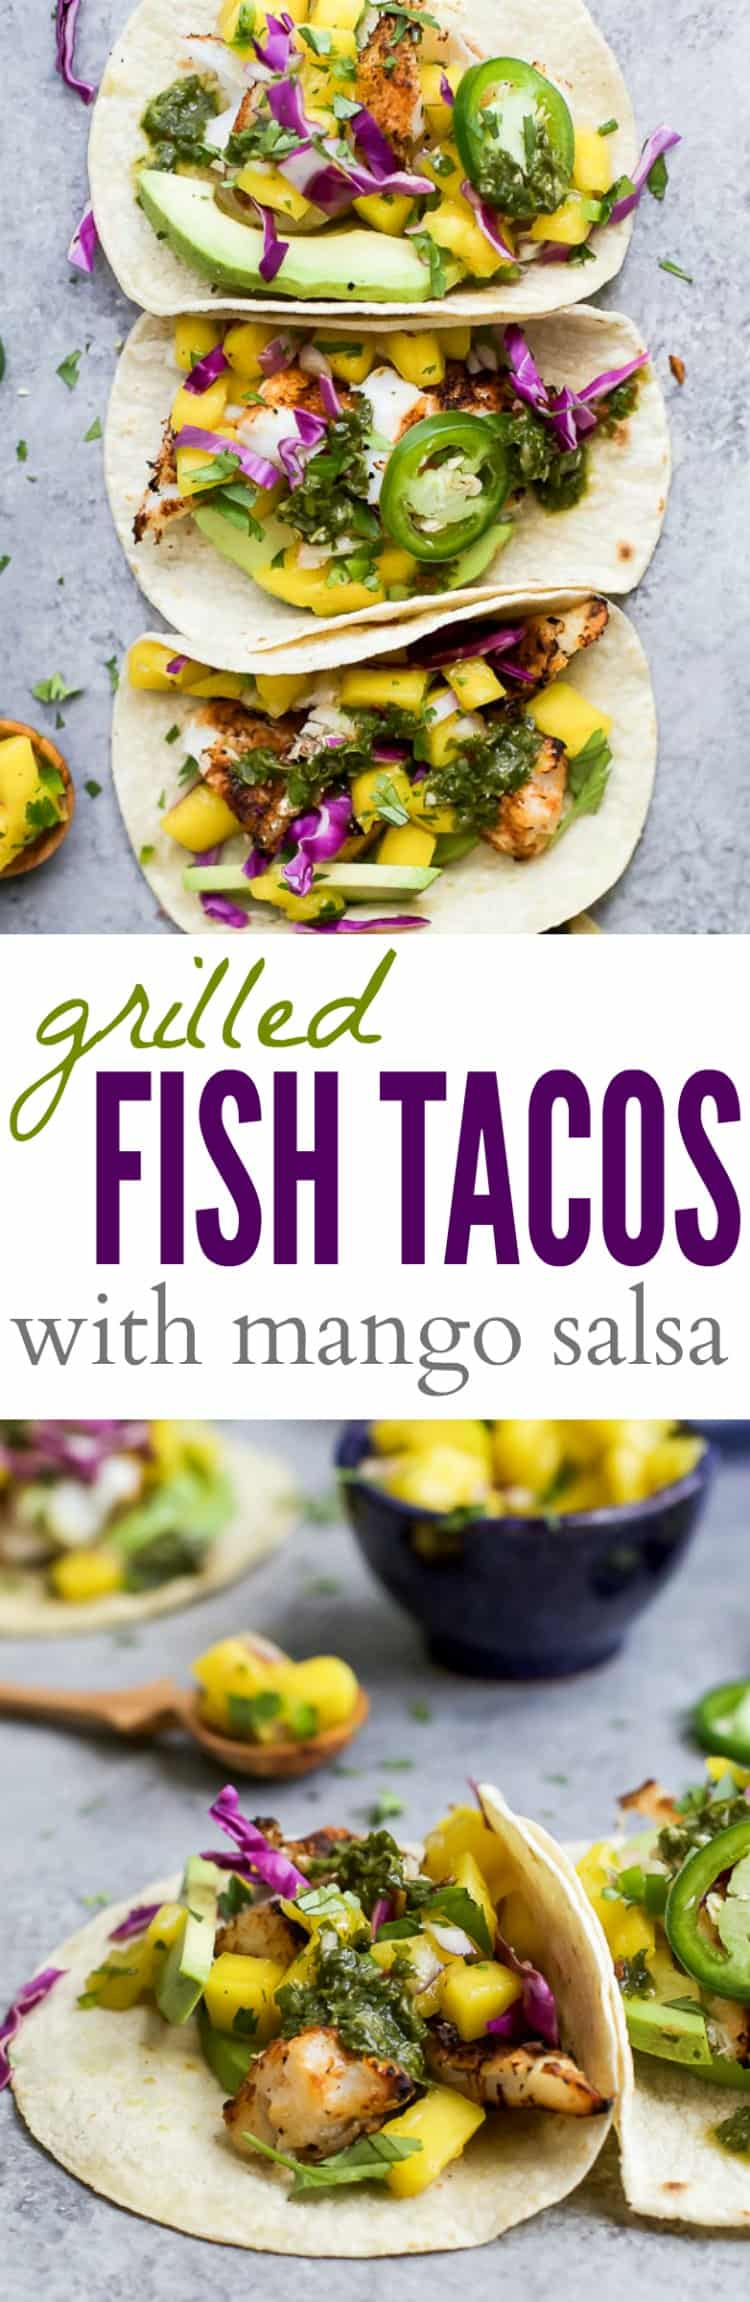 Recipe collage for Grilled Fish Tacos with Mango Salsa